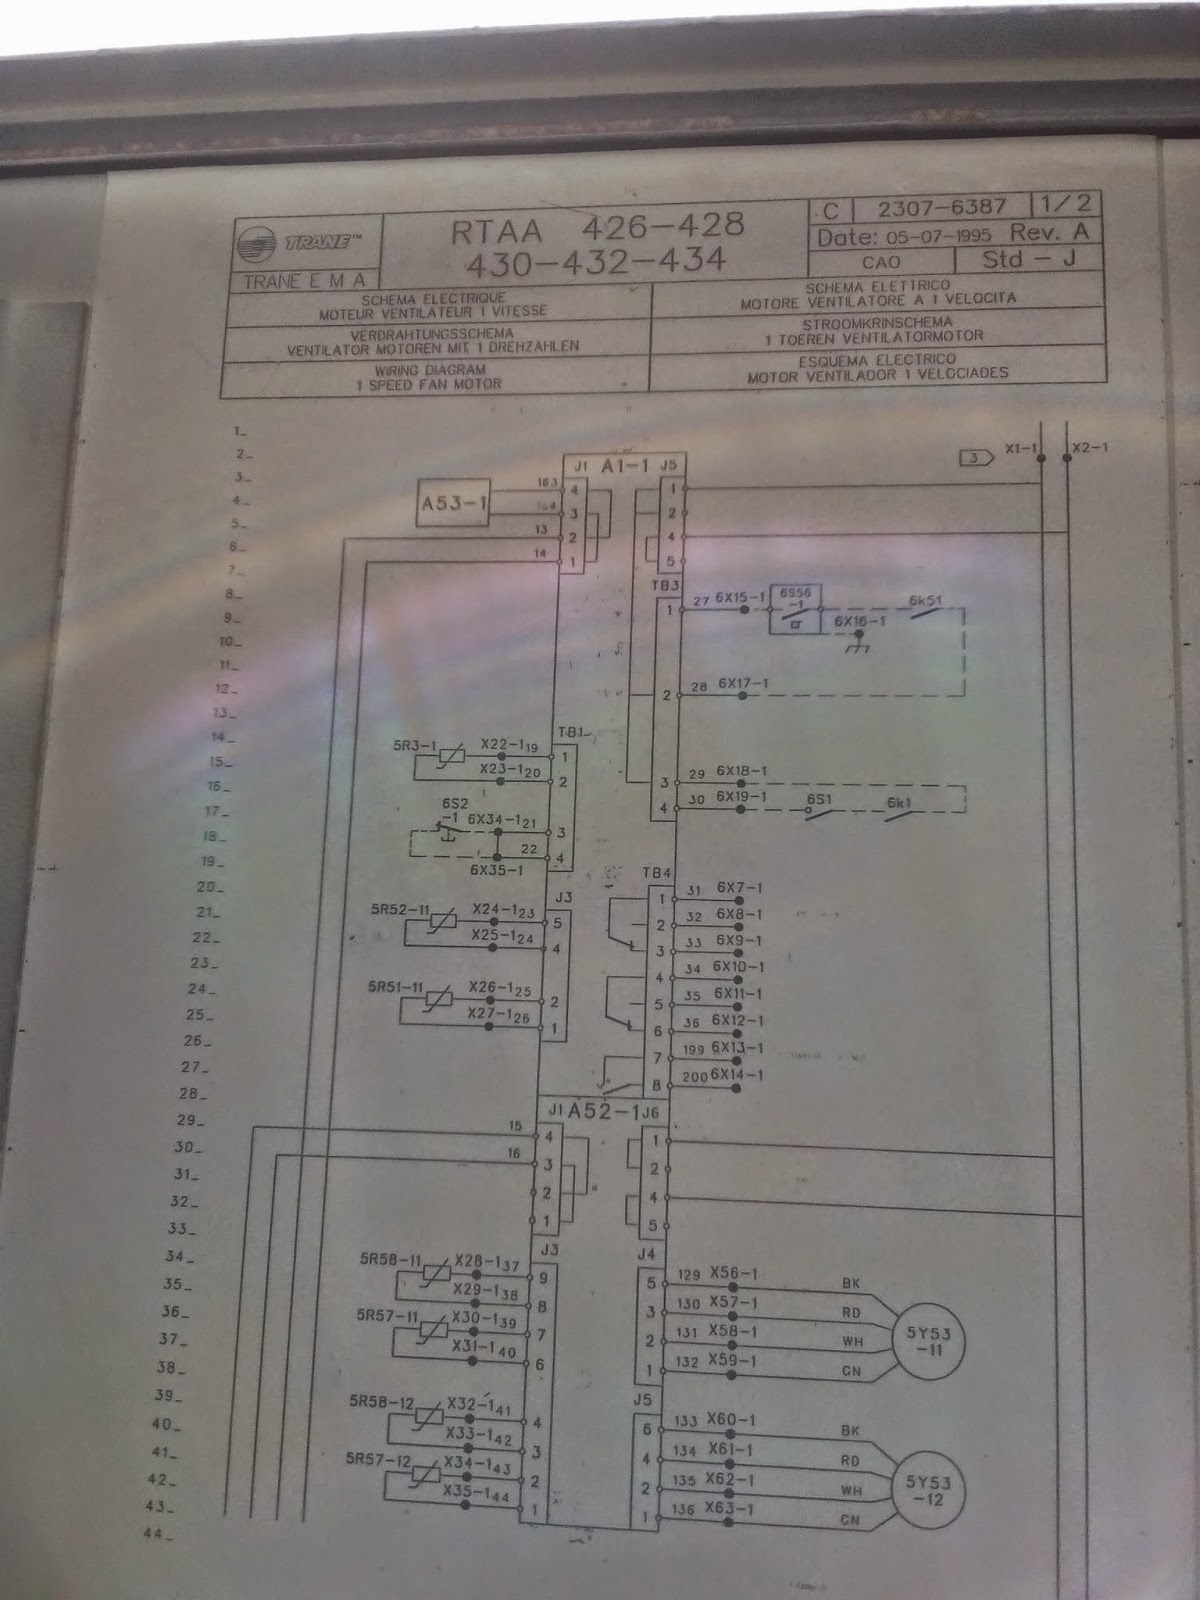 Trane Wiring Diagram How To Wire 3 Lights One Switch Hvac Chillers Heatpump Chiller Air Cooled Control